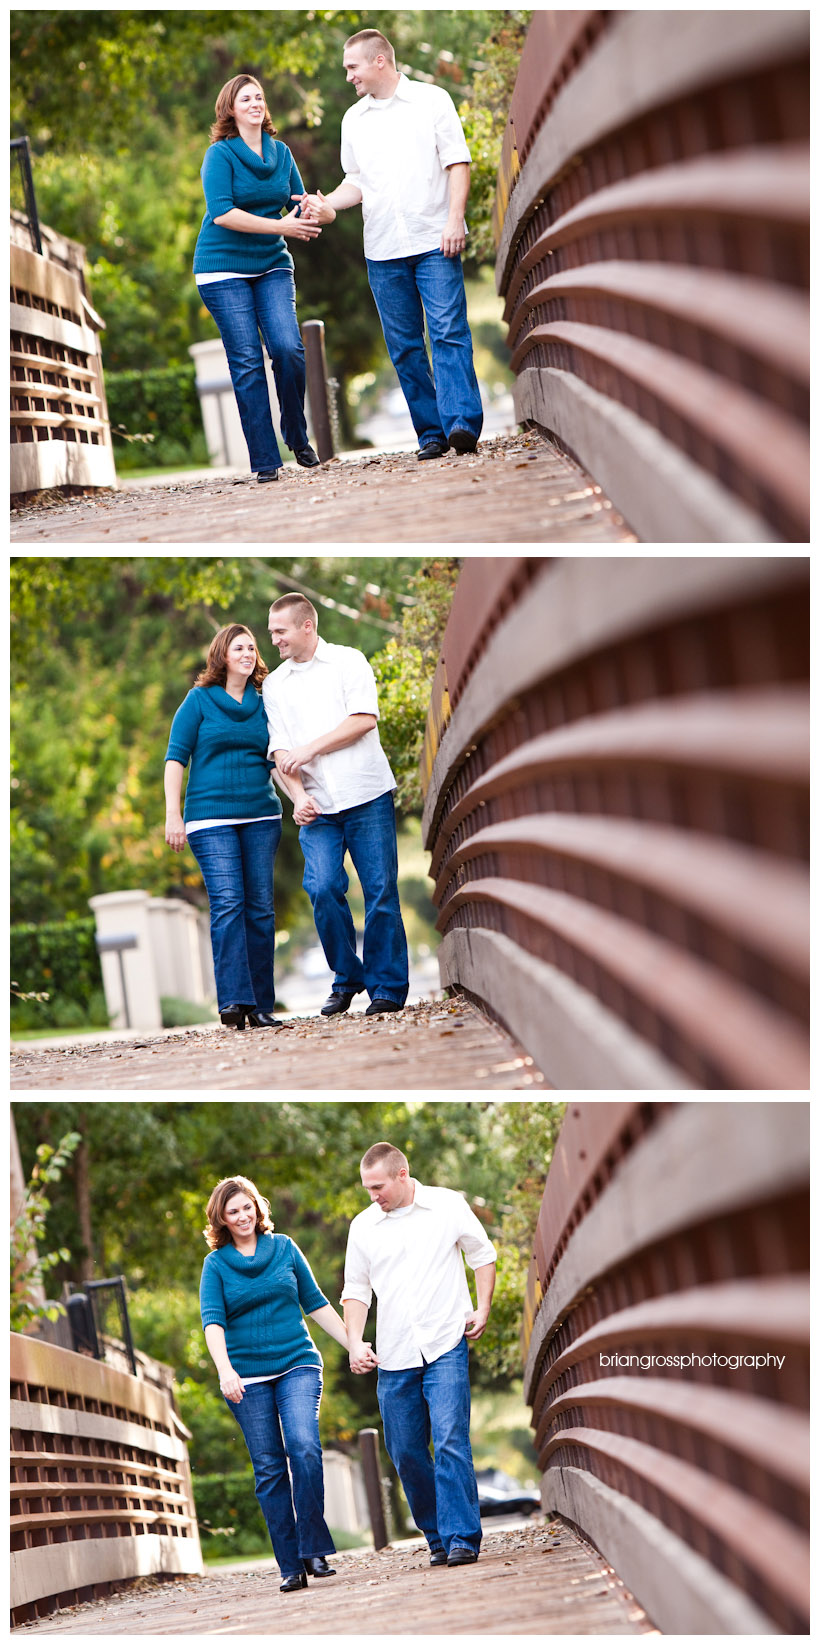 brian gross photography Family_photography Danville_ca 2009